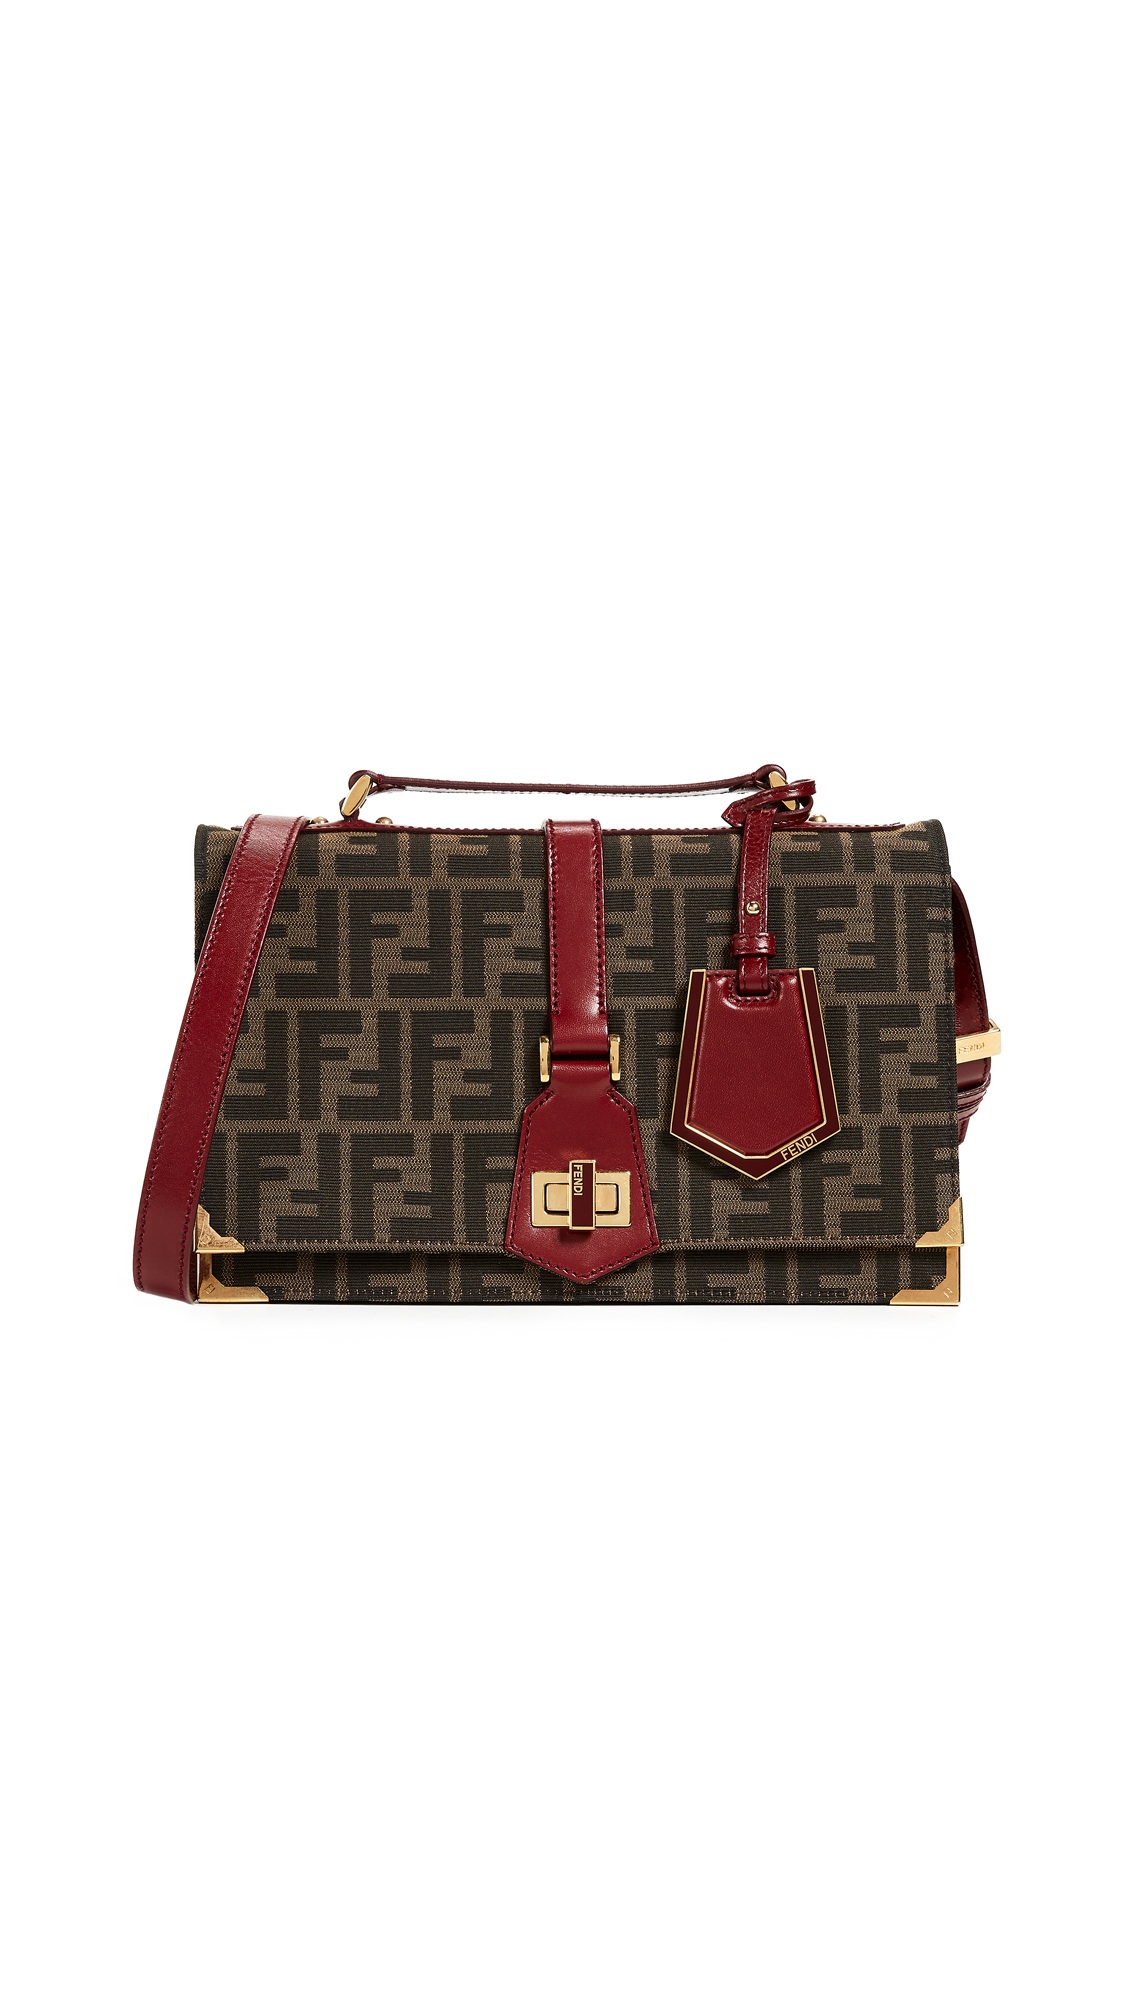 b33fc958382d What Goes Around Comes Around Fendi Zucca Shoulder Bag In Red ...